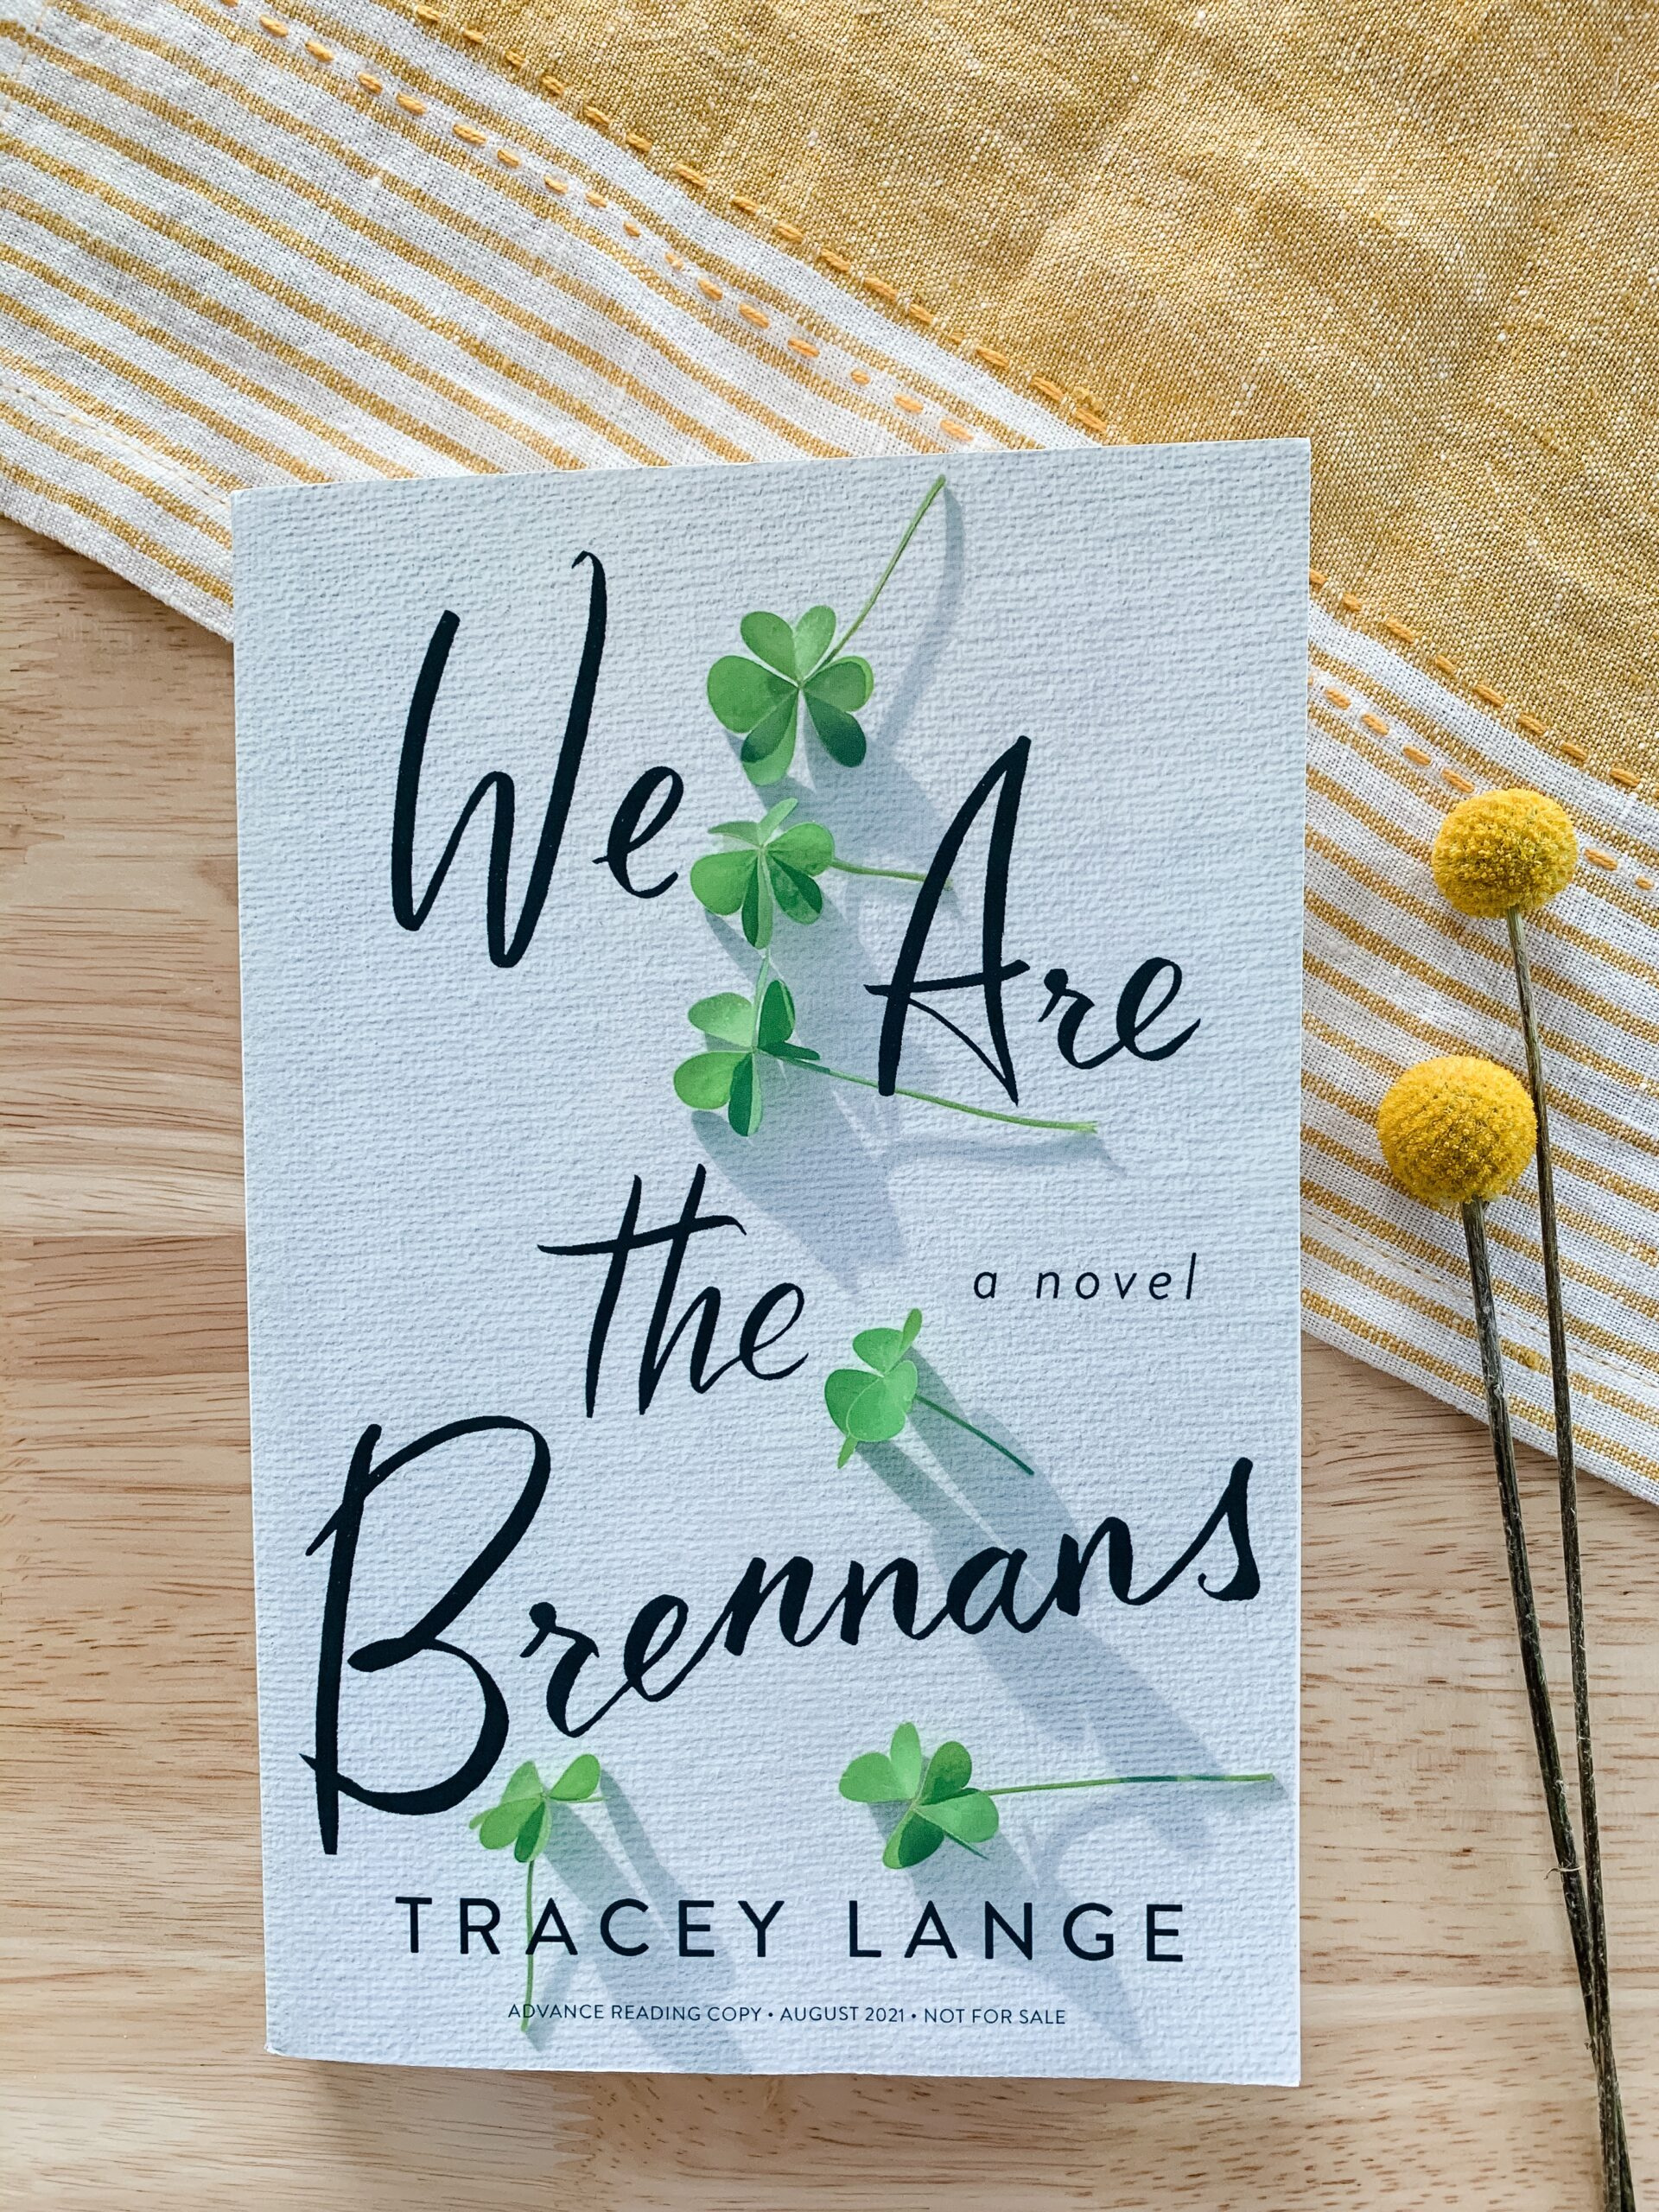 Book Review of We Are the Brennans by Tracey Lange